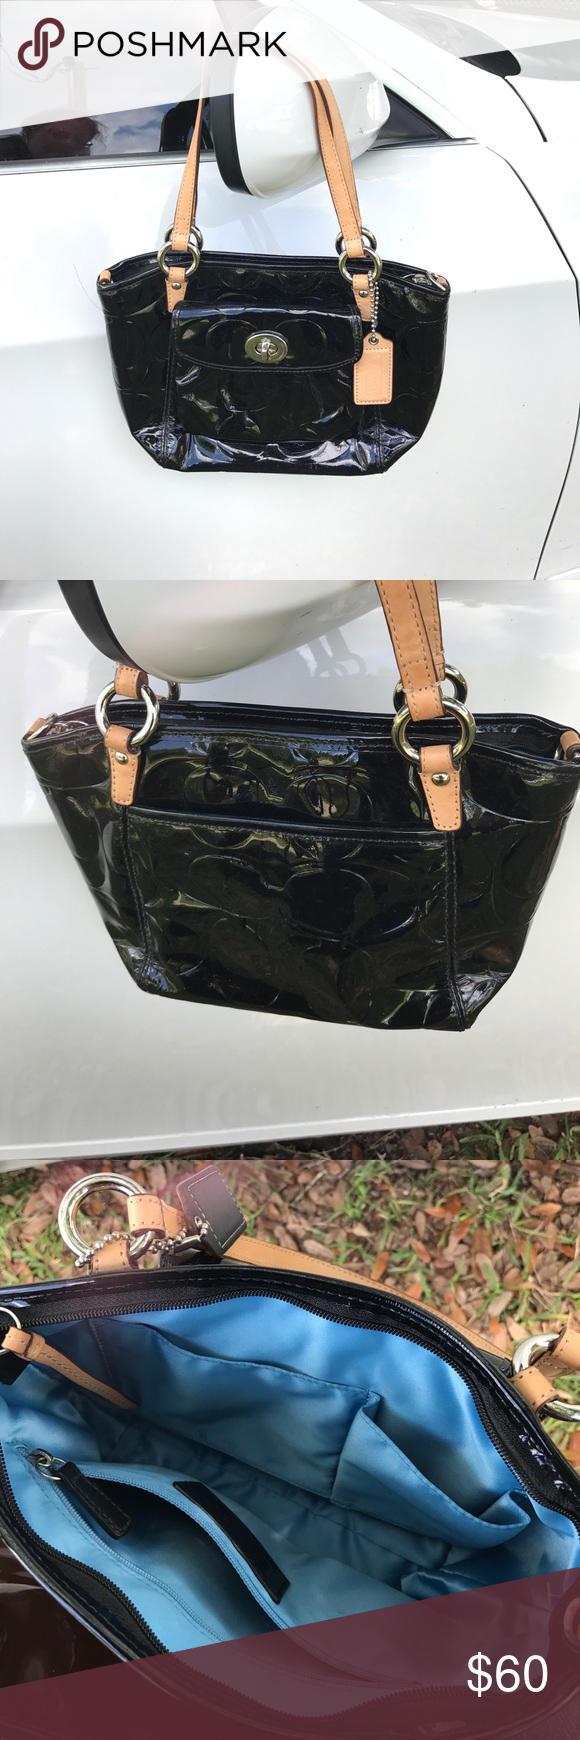 Coach black patent small bag Beautiful condition very close to new Coach Bags Mini Bags